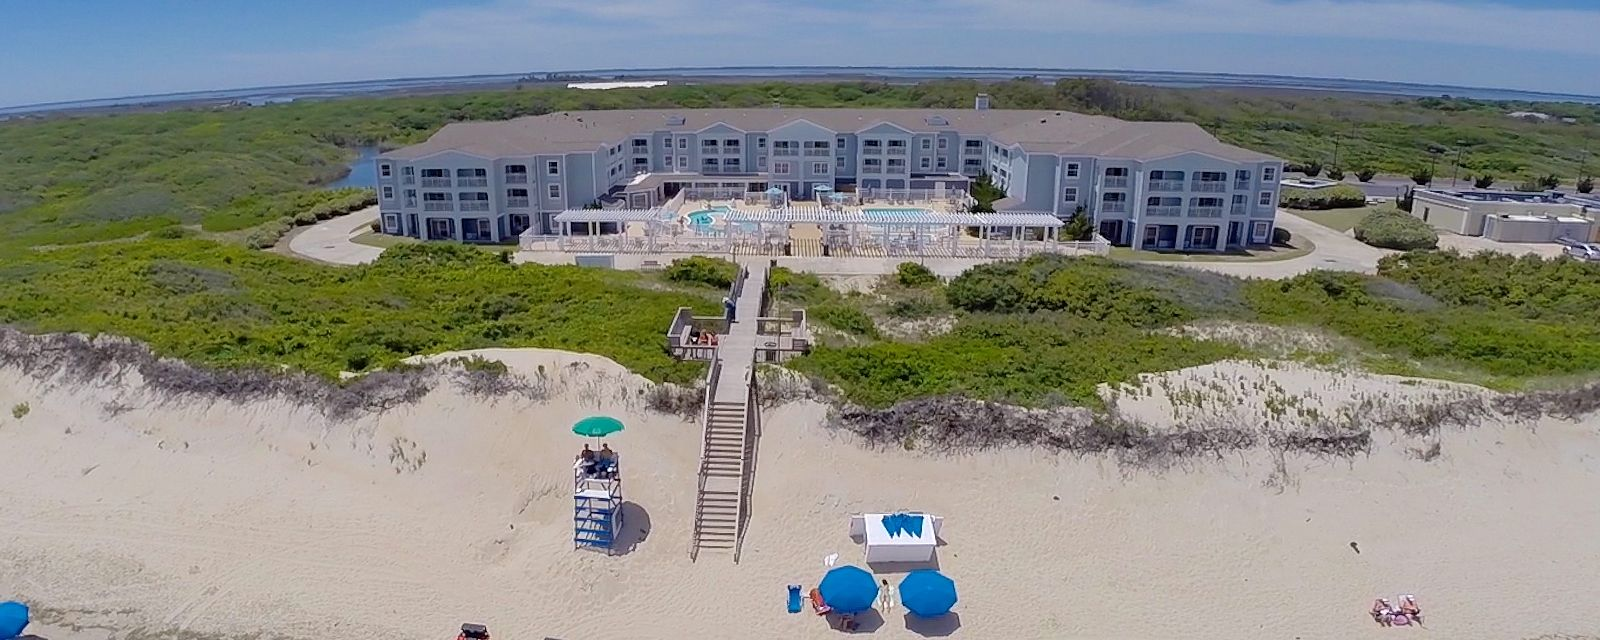 Owens Motel On Milepost 16 In Nag S Head Nc Outer Banks Pinterest